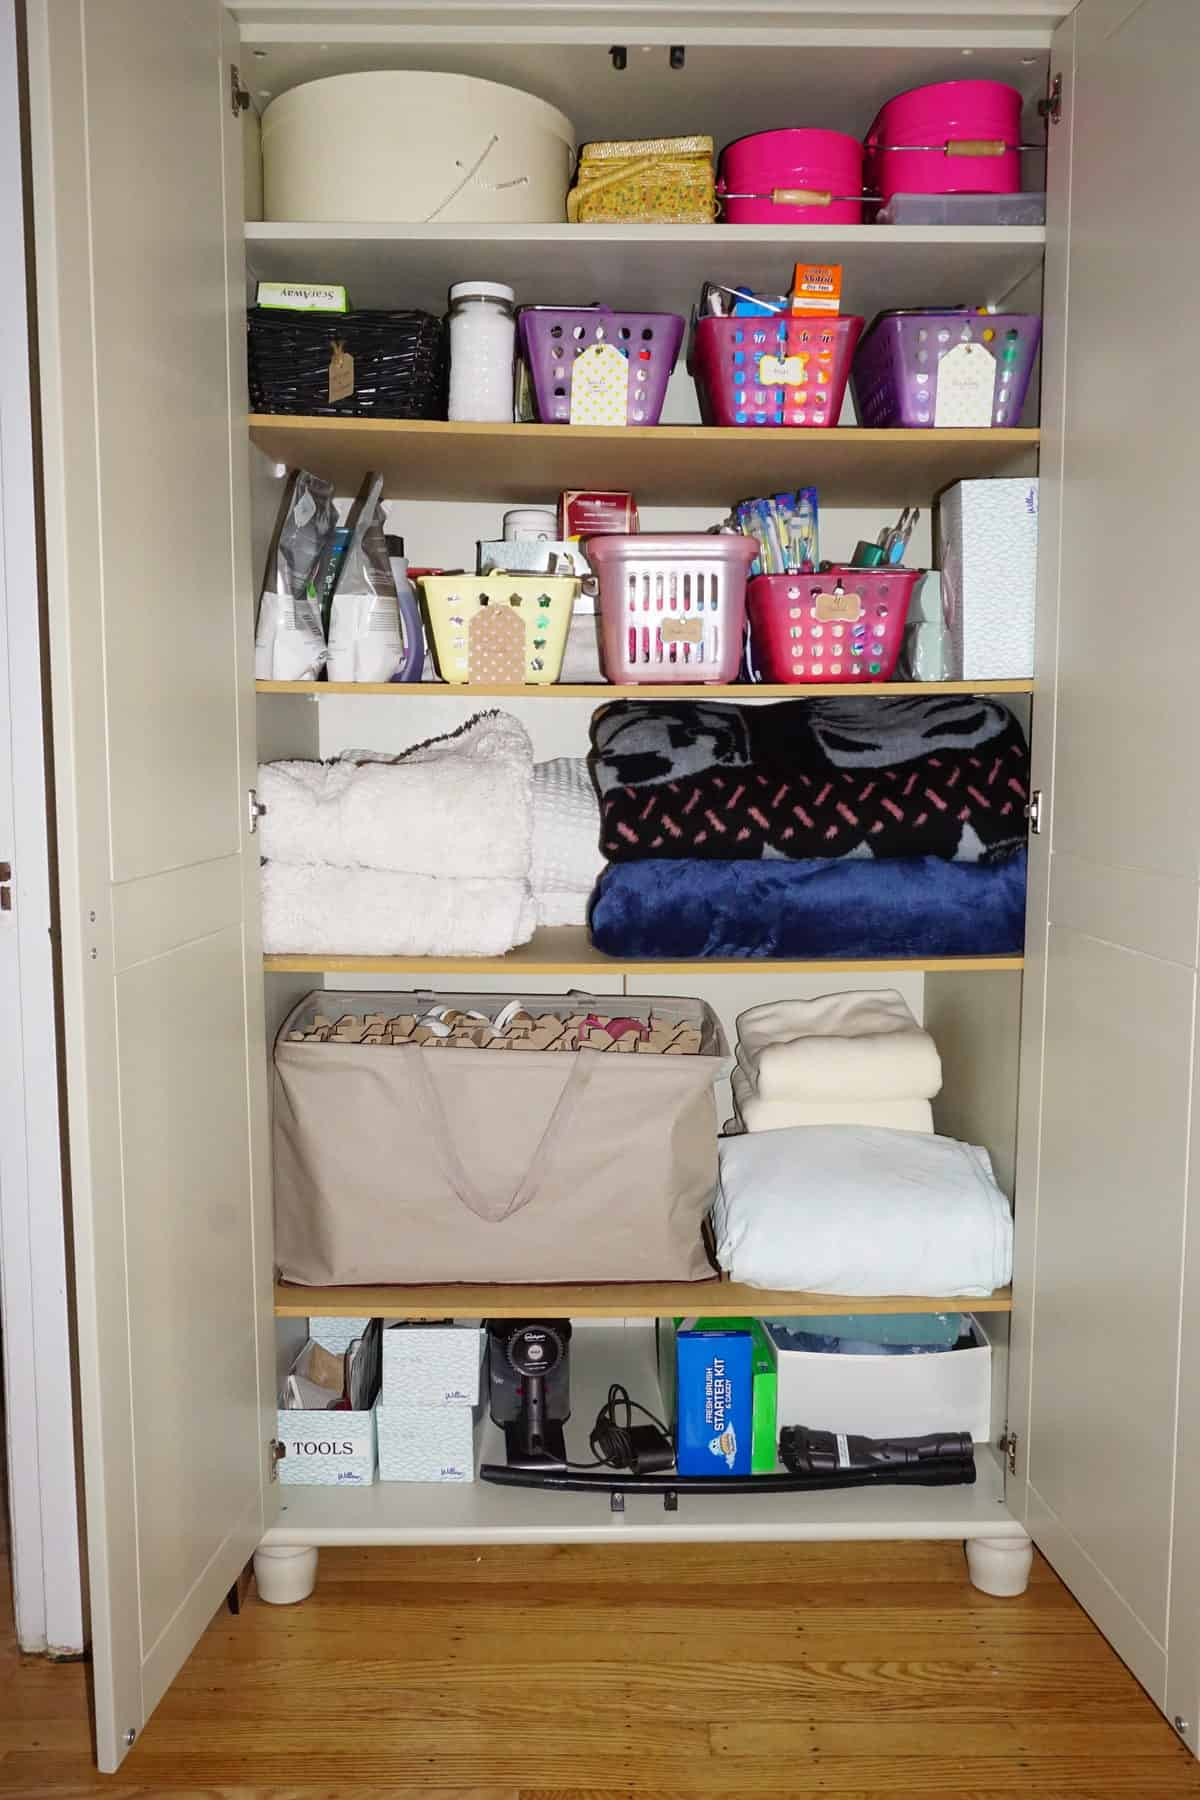 Linen Closet Organizing To Make Room For Kitty